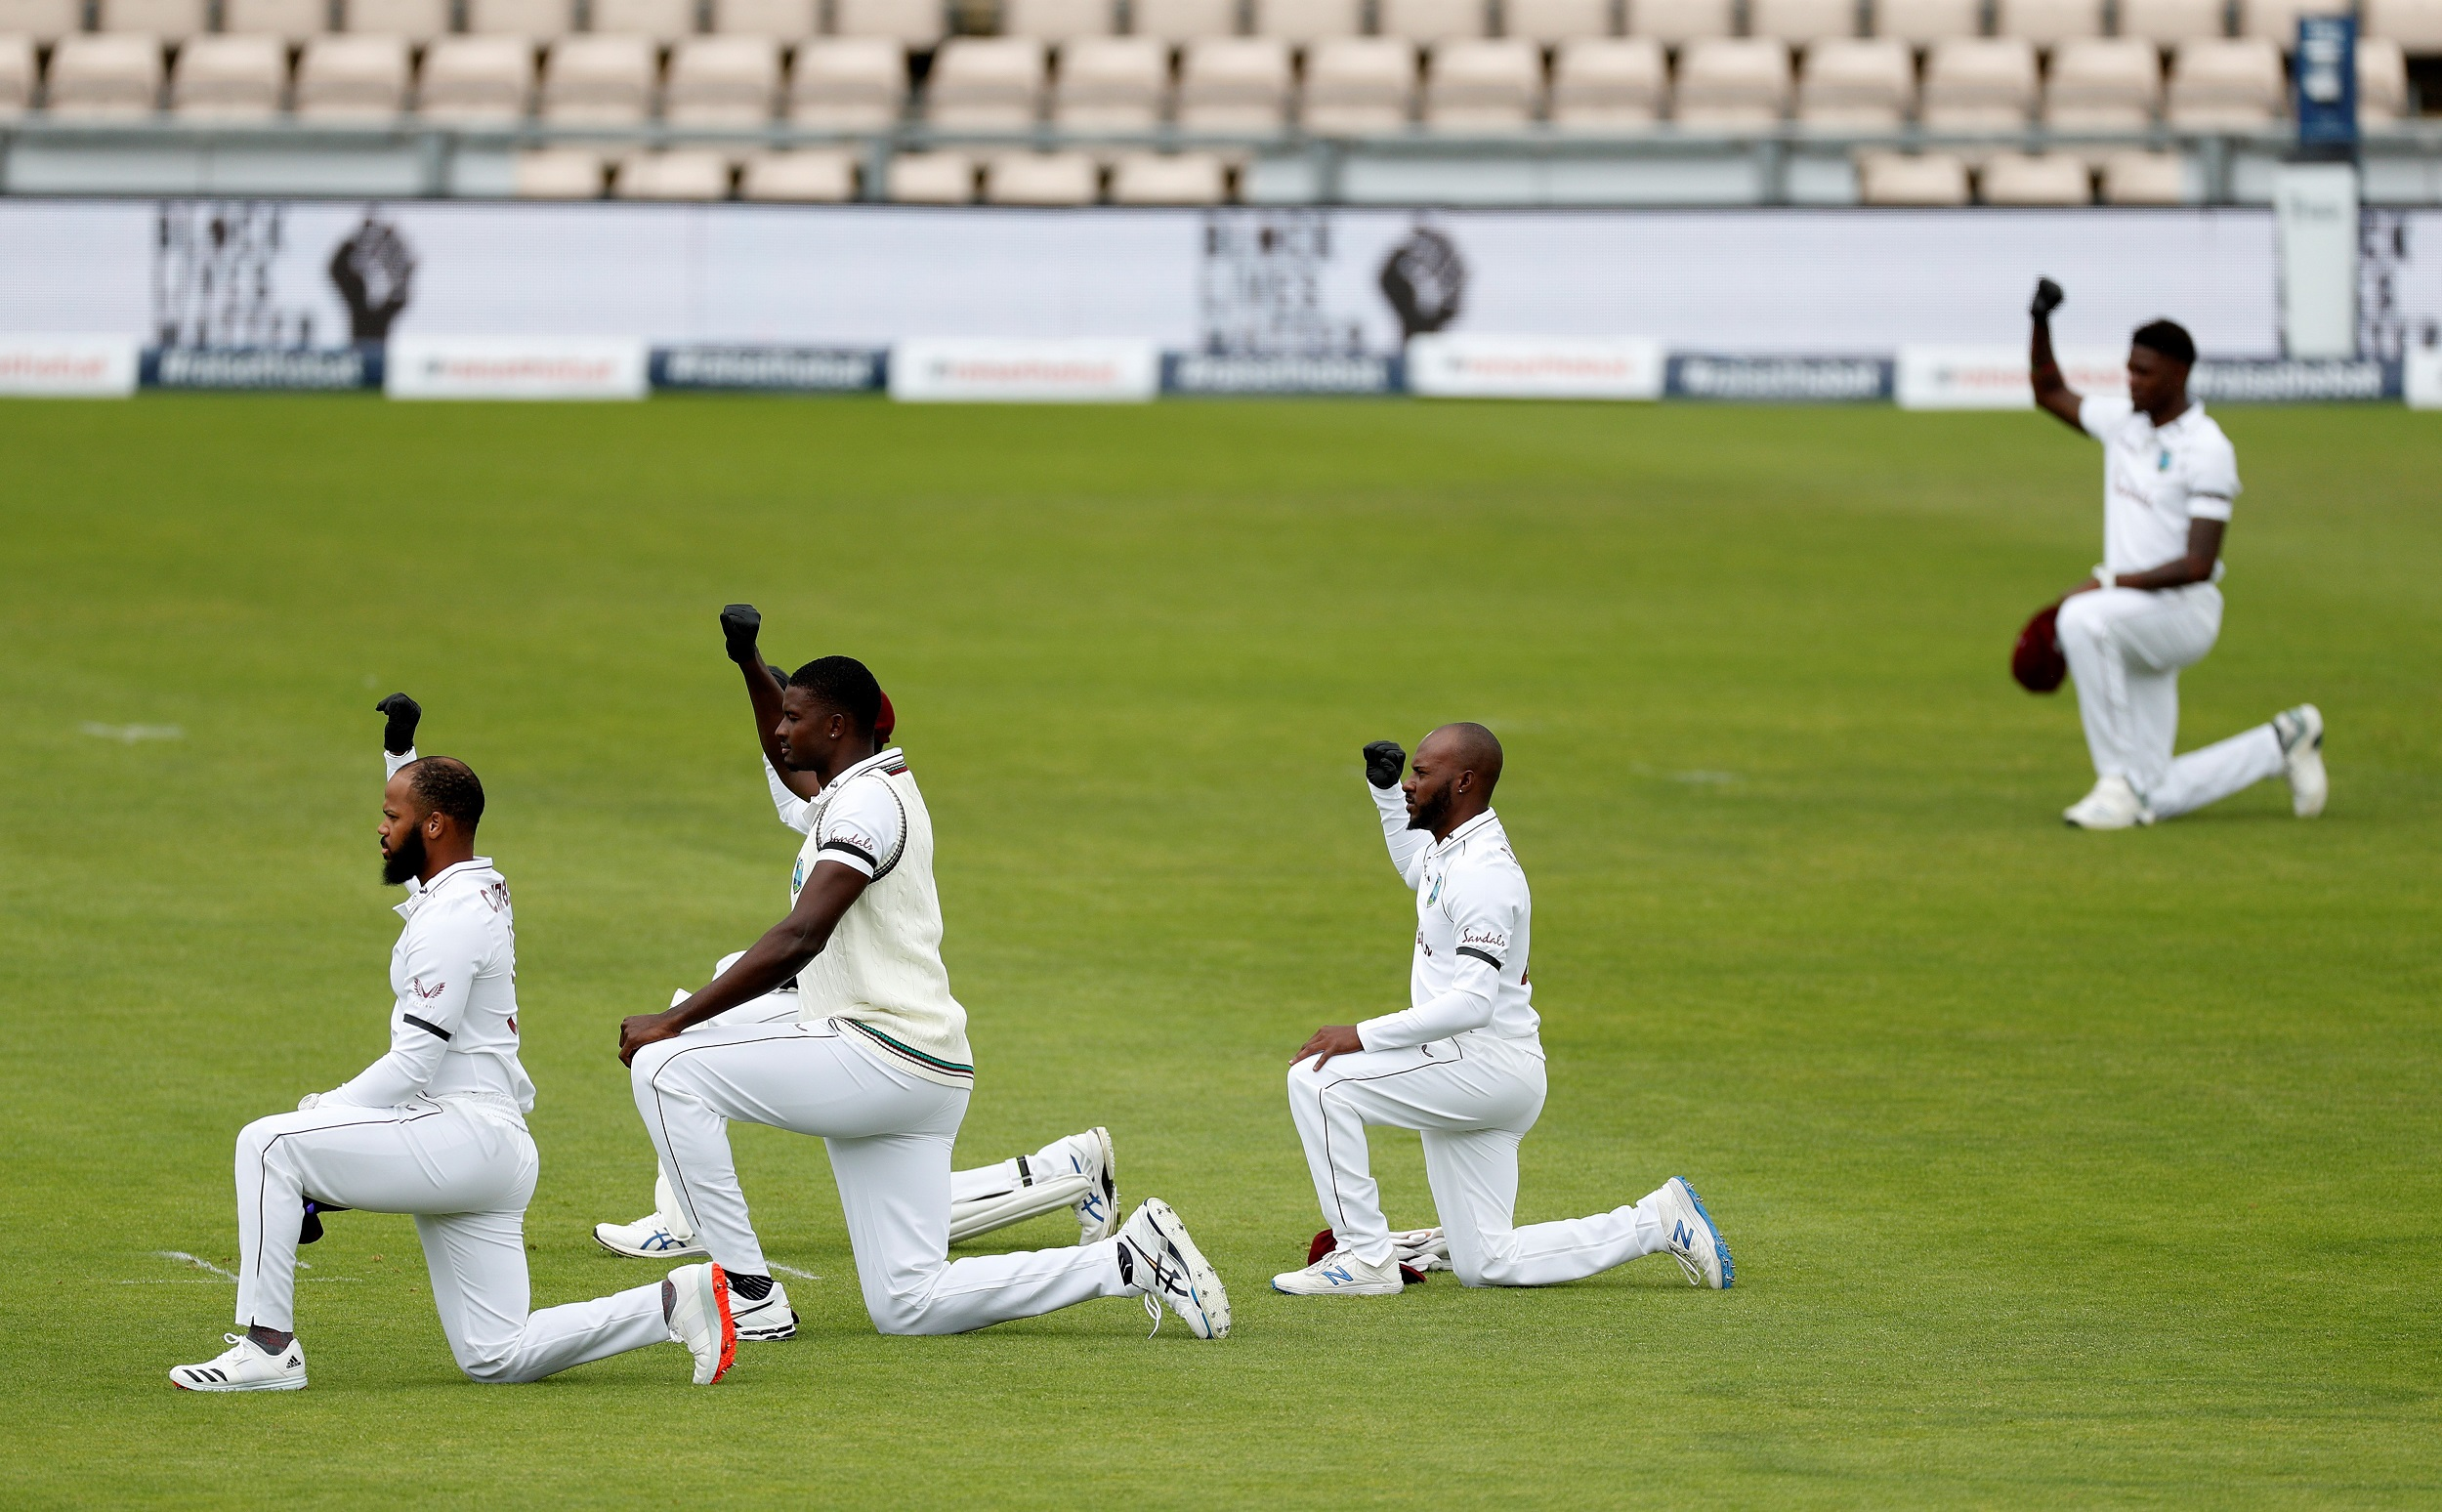 Players takes a knee in support of the Black Lives Matter movement on the first day of the first Test cricket match between England and the West Indies.